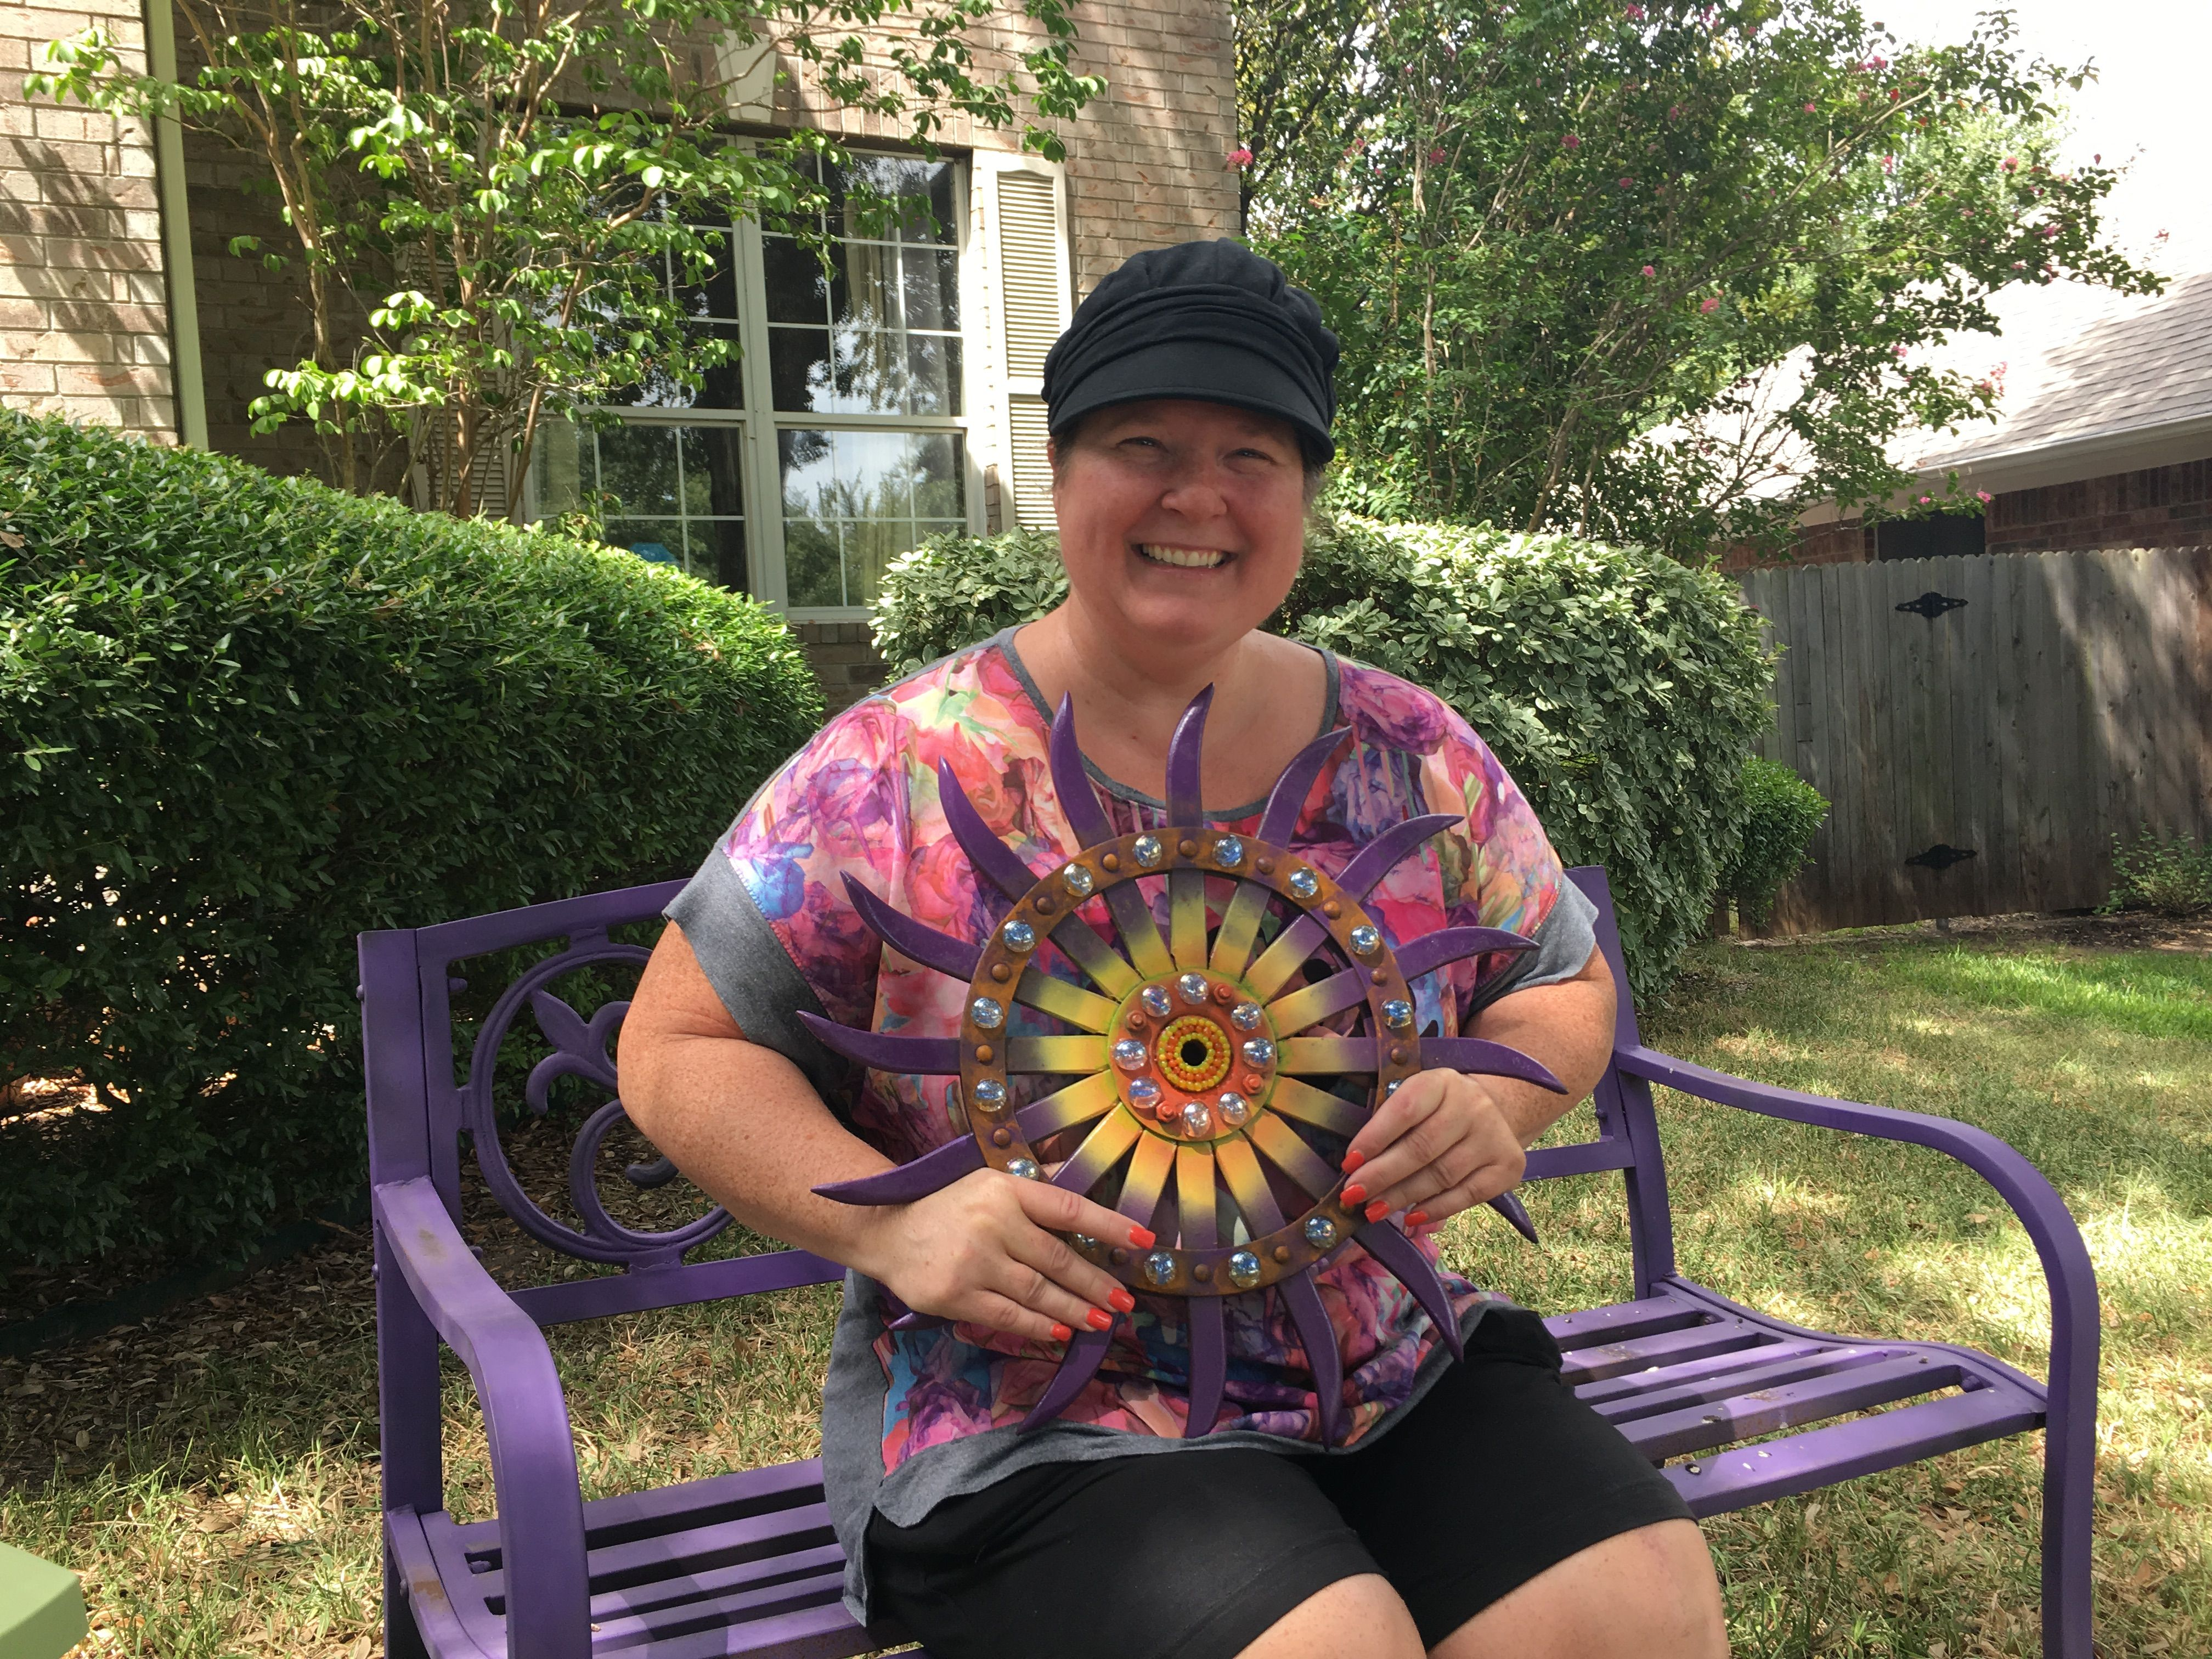 A happy customer with her new rotary hoe garden art!